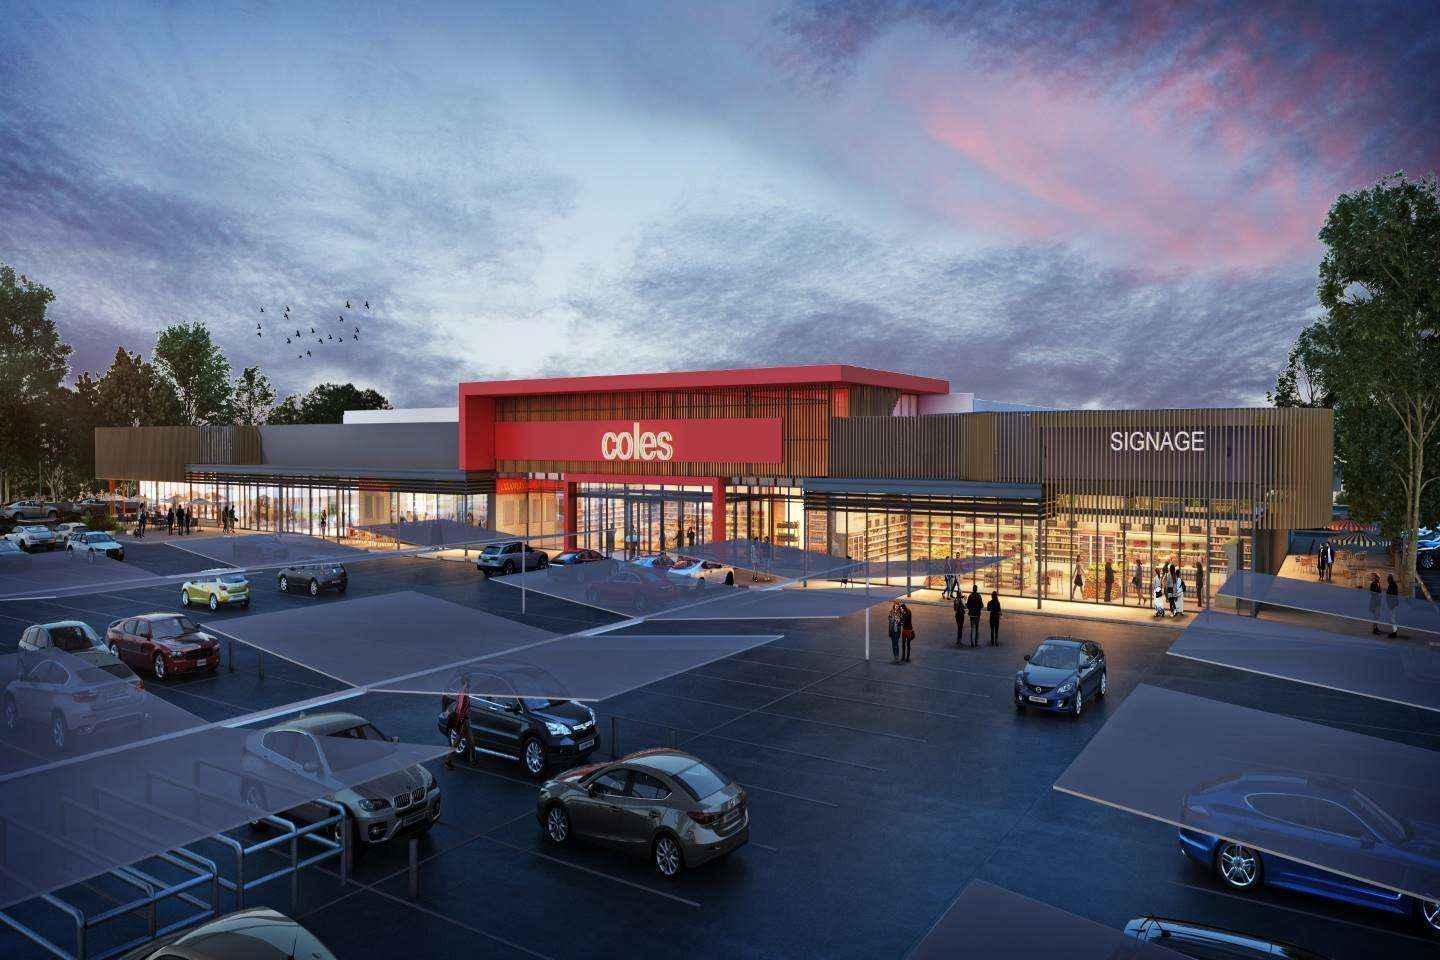 Coles gives an edge to new centre